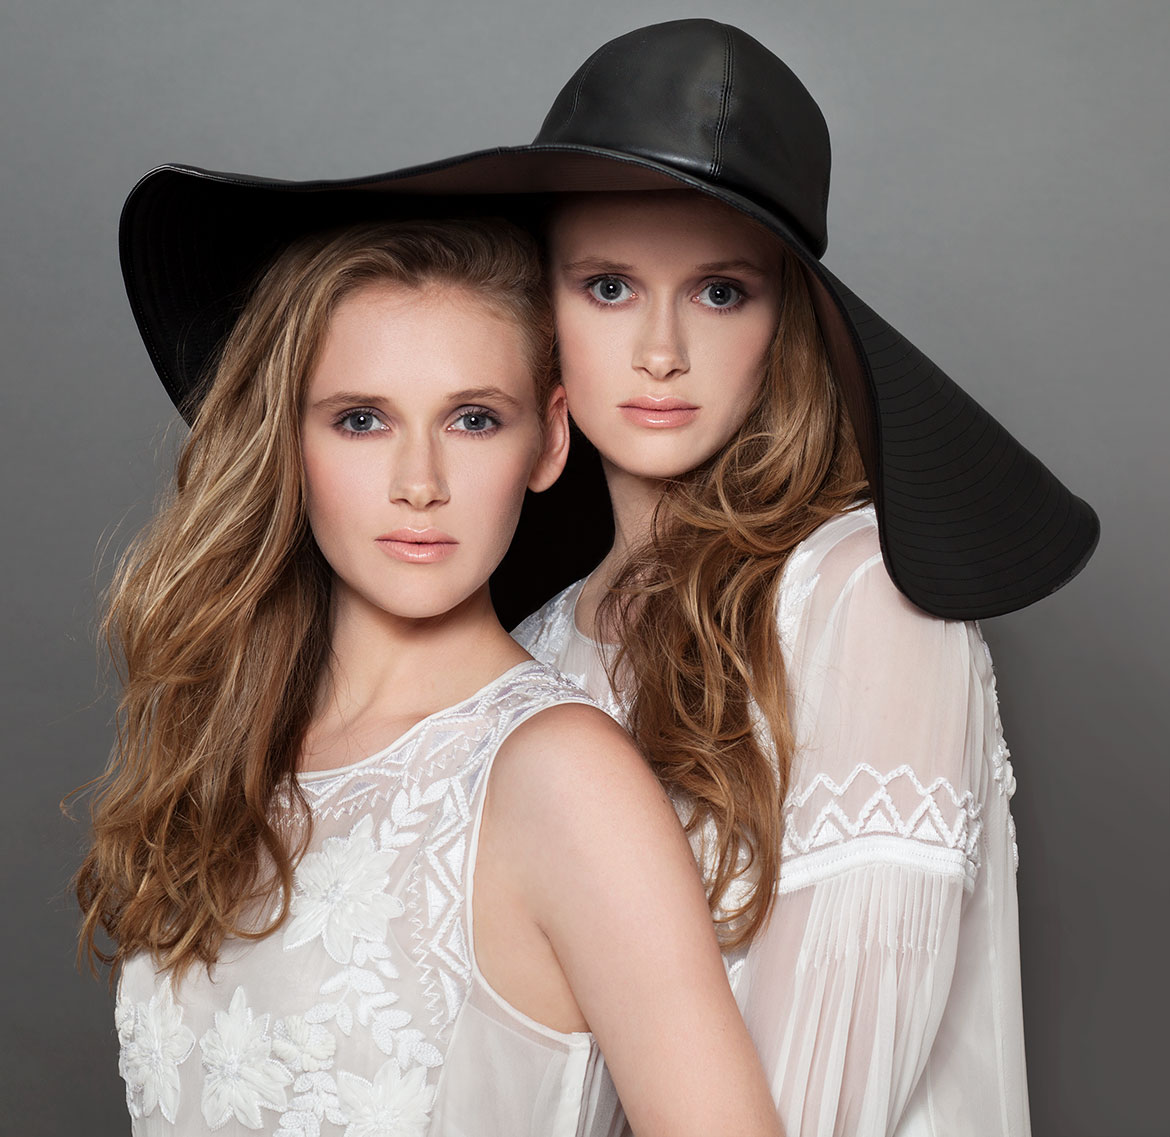 Caitlin-Holland_Black-Hat_JeanSweetPhoto